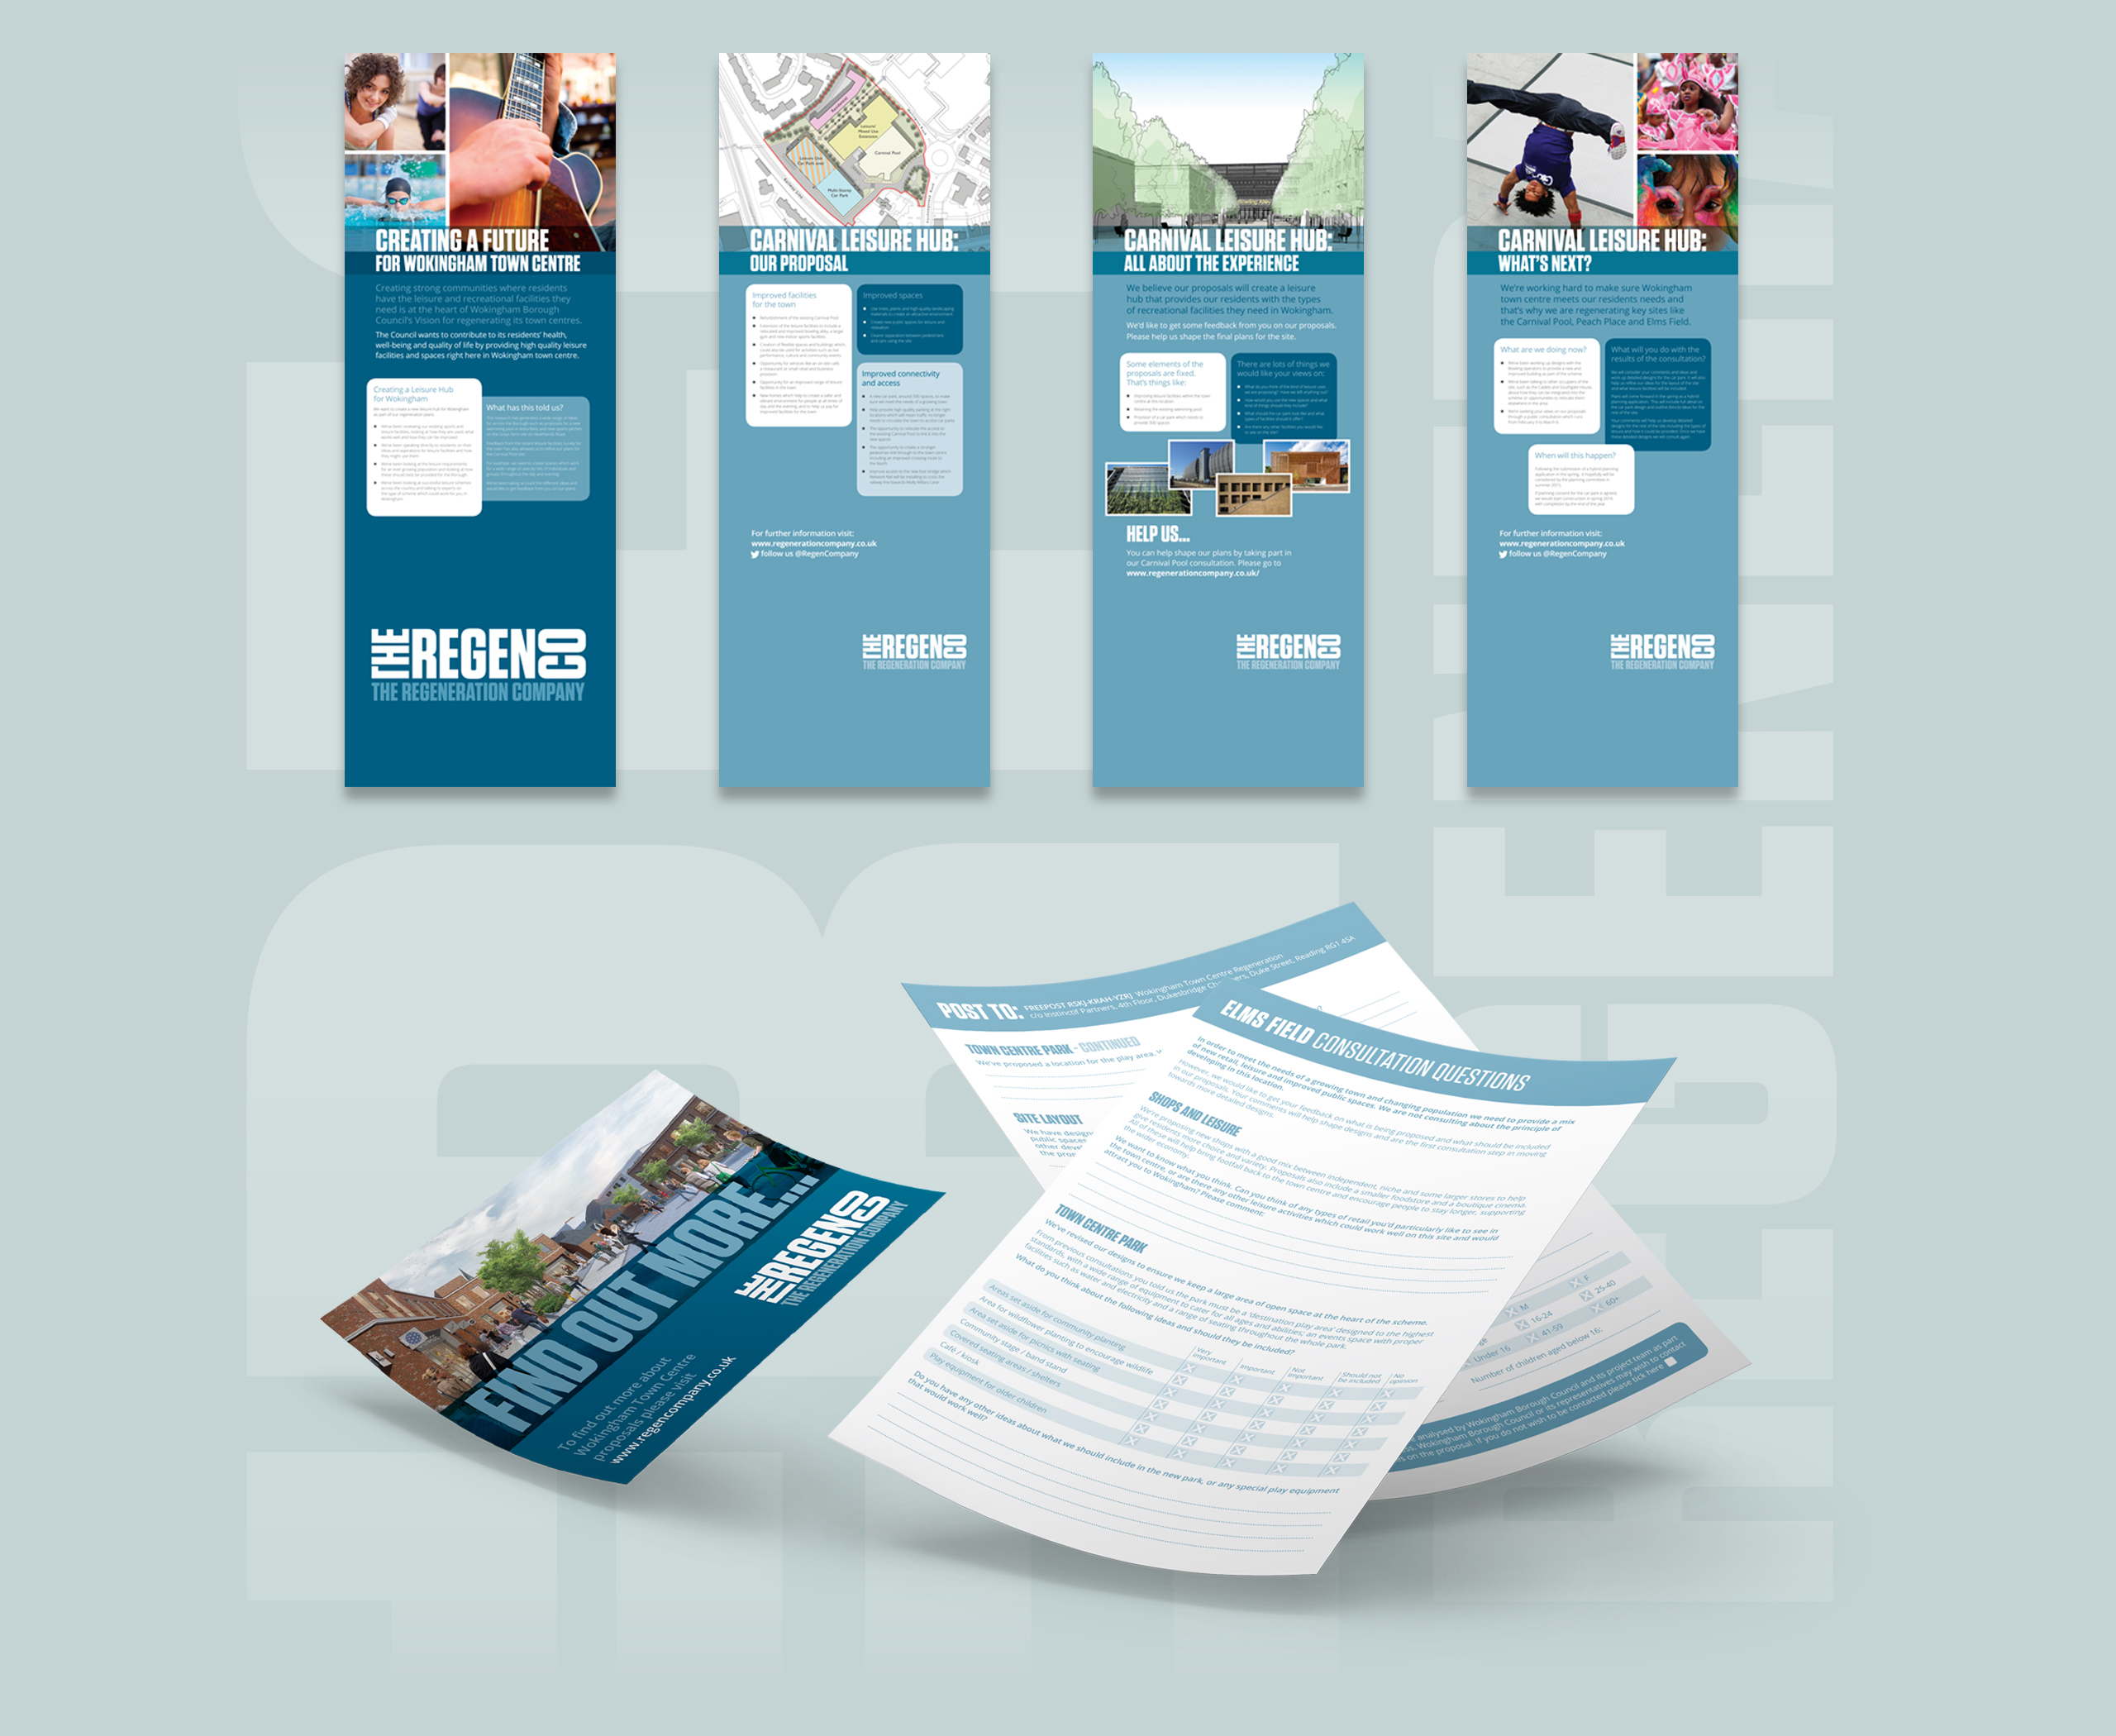 pull up banners showing different options for promoting the projects of the regeneration comapny, also shown are printed consultation questions